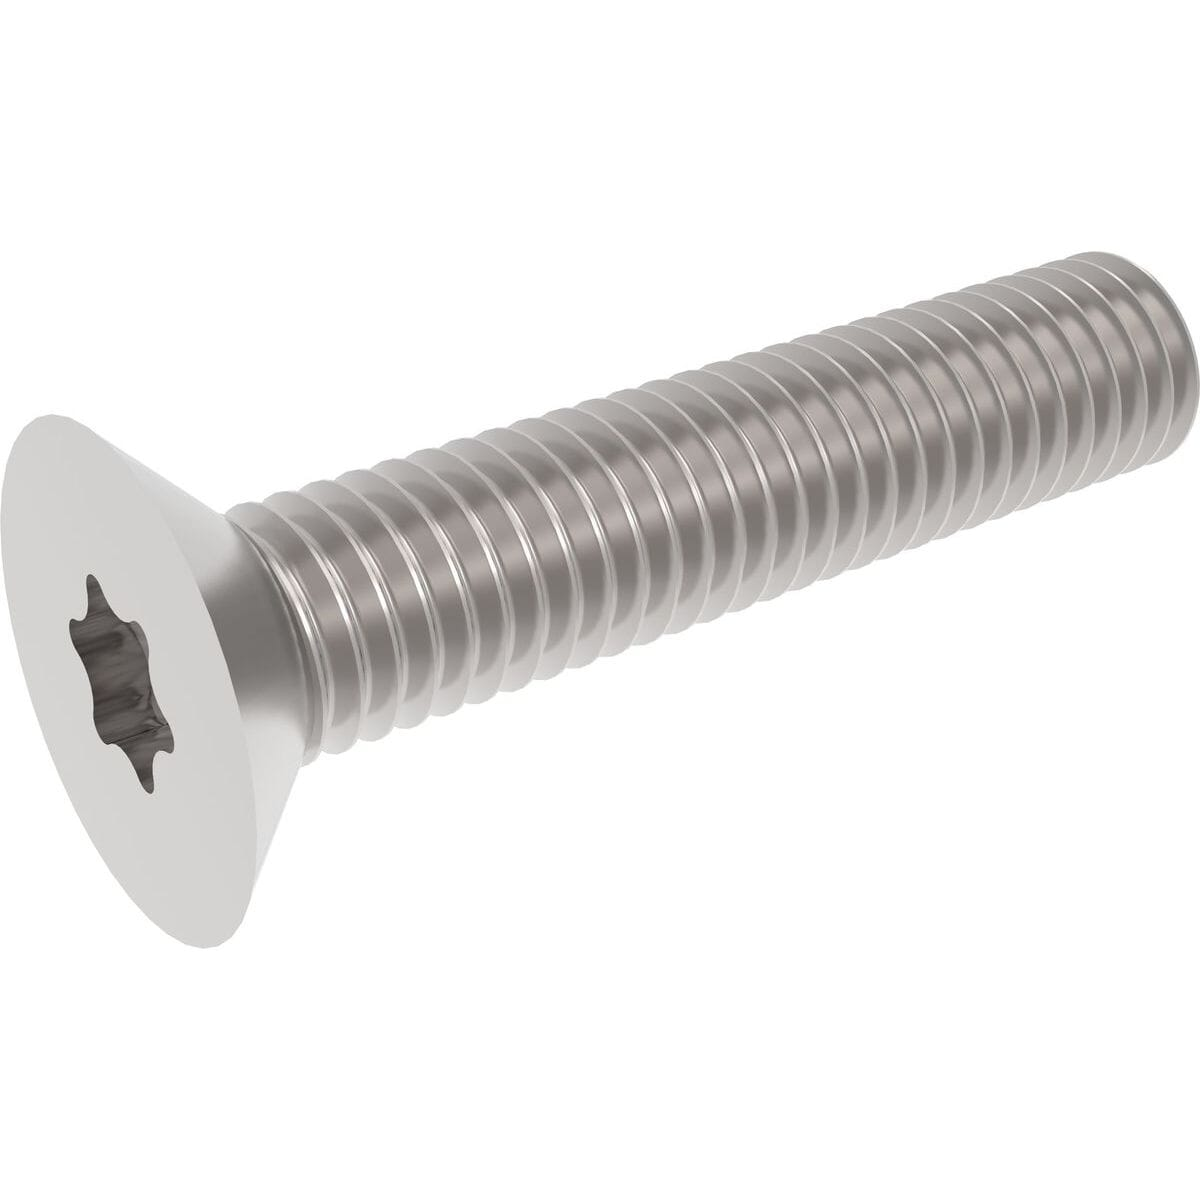 M3 x 14mm Torx Countersunk Screws (ISO 14581) - Marine Stainless Steel (A4)